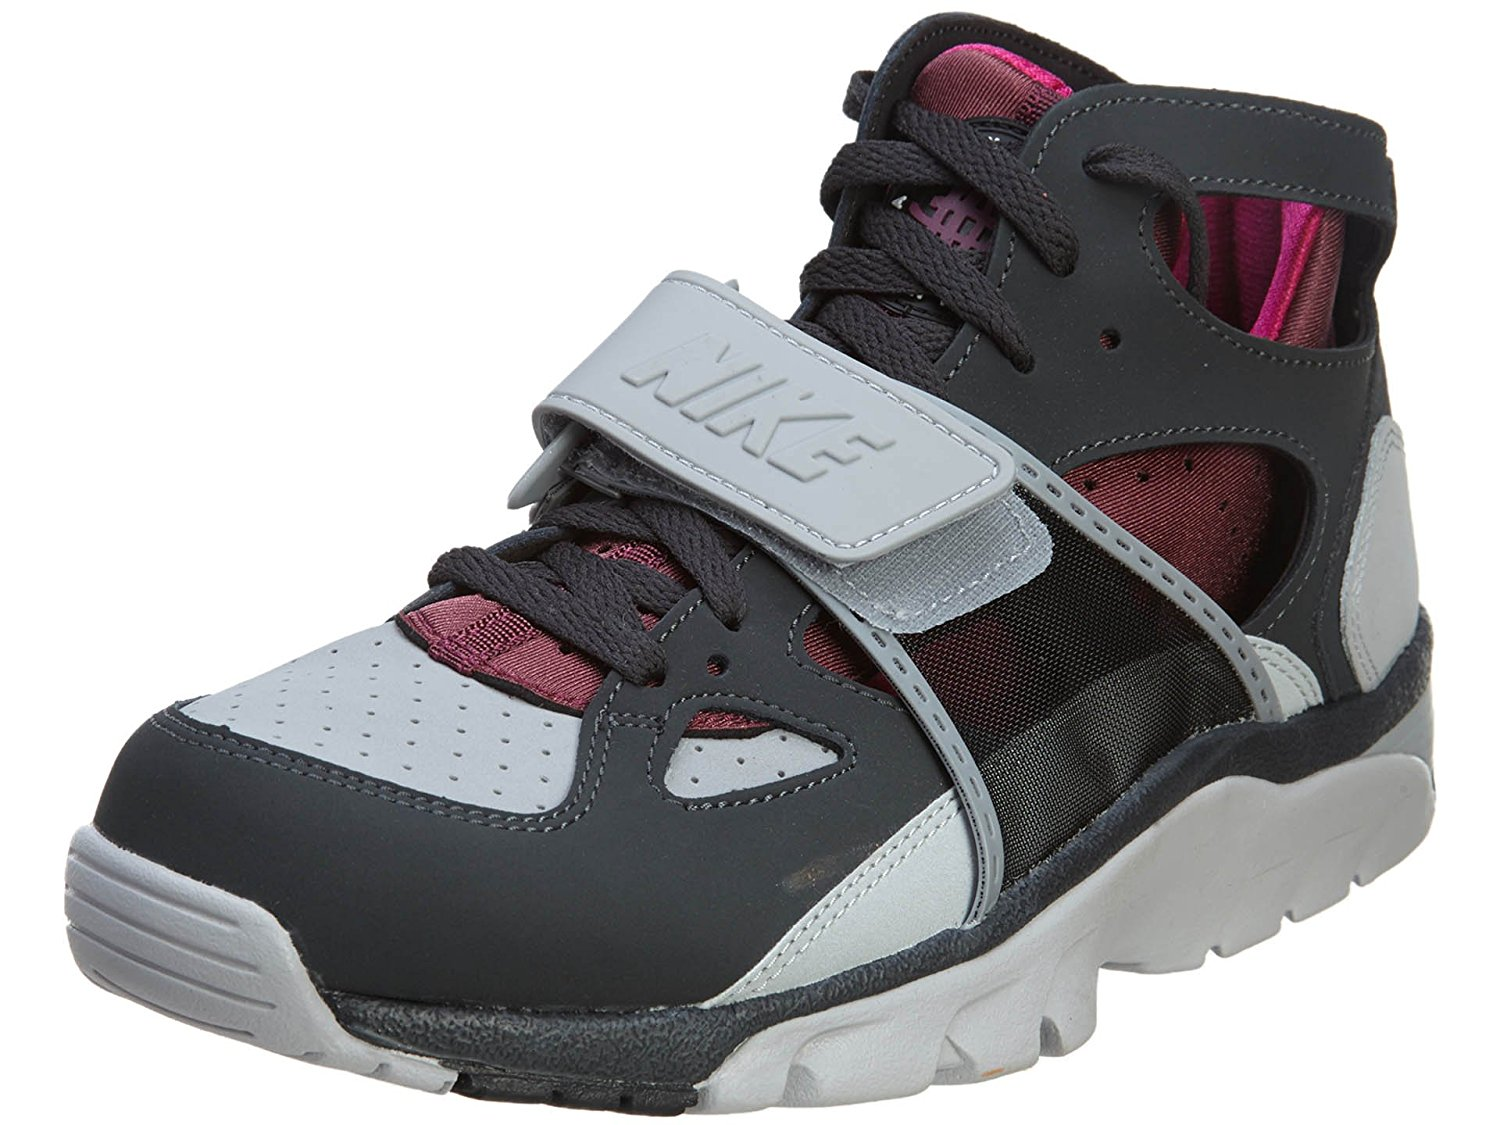 177ad2df9a879 Get Quotations · Nike Air Trainer Huarache Wild Grey Puple 12